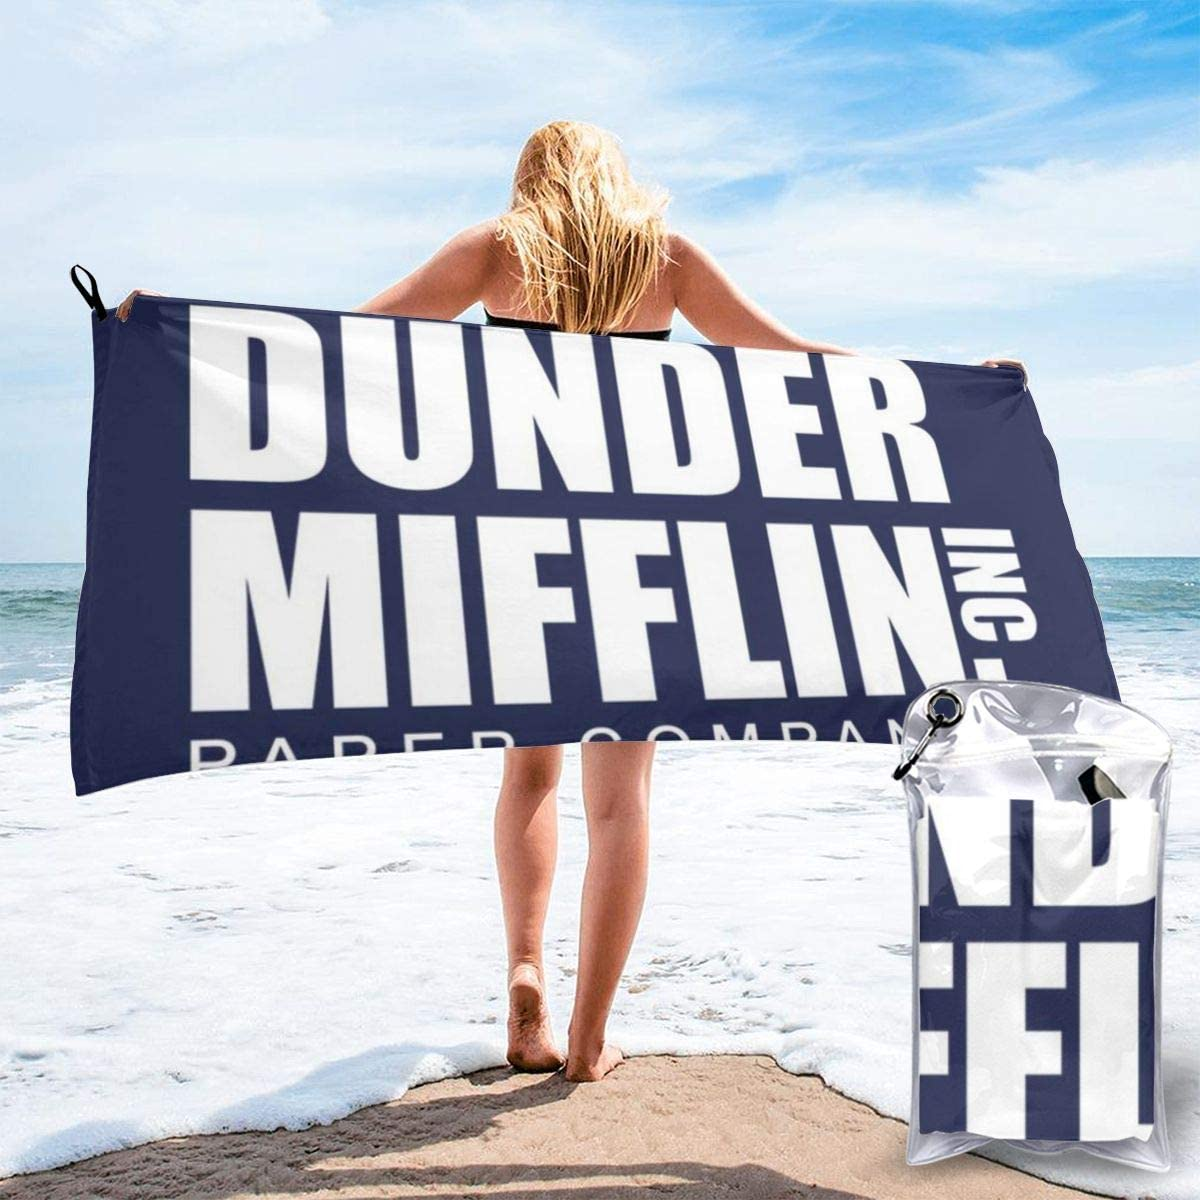 Dunder Mifflin Paper Company The Office USA, Trucker Cap Microfiber Large Beach Towel, Convenient And Foldable, Equipped With Carabiner For Easy Storage, Soft Bath Towel, Quick-drying Shower Towel